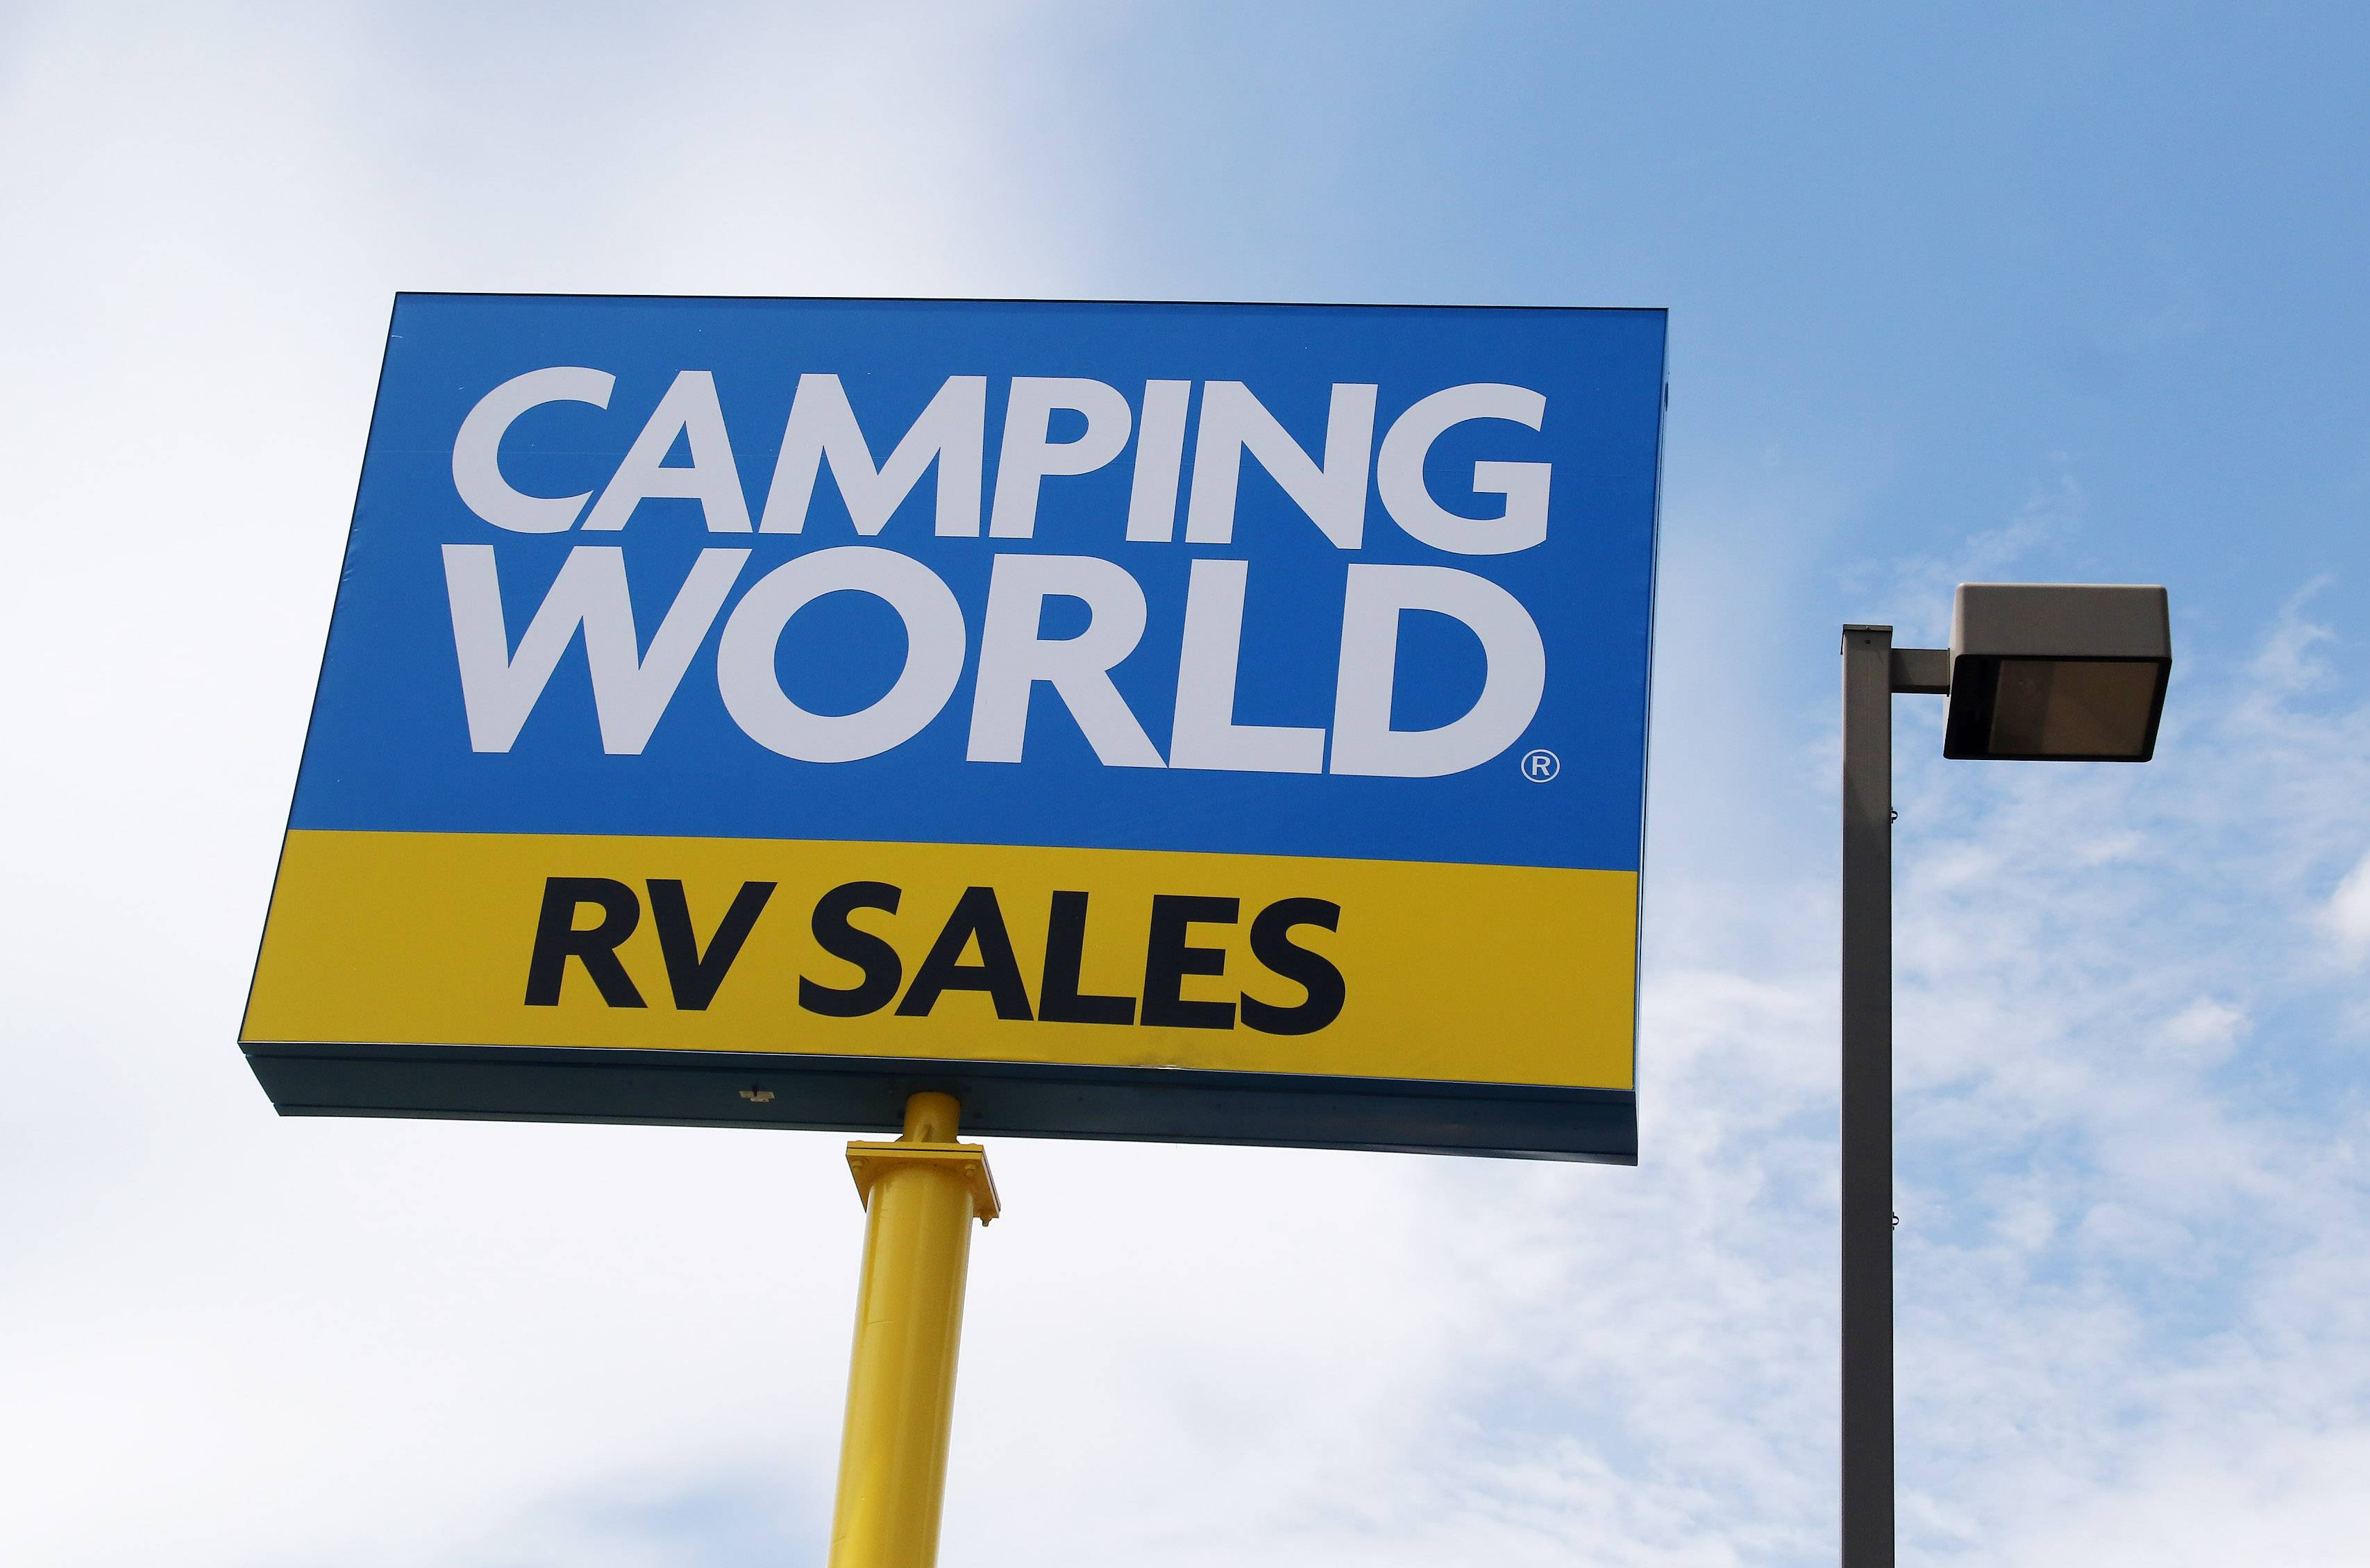 Camping World headquartered in Lincolnshire buys to RV retailers in South Dakota.